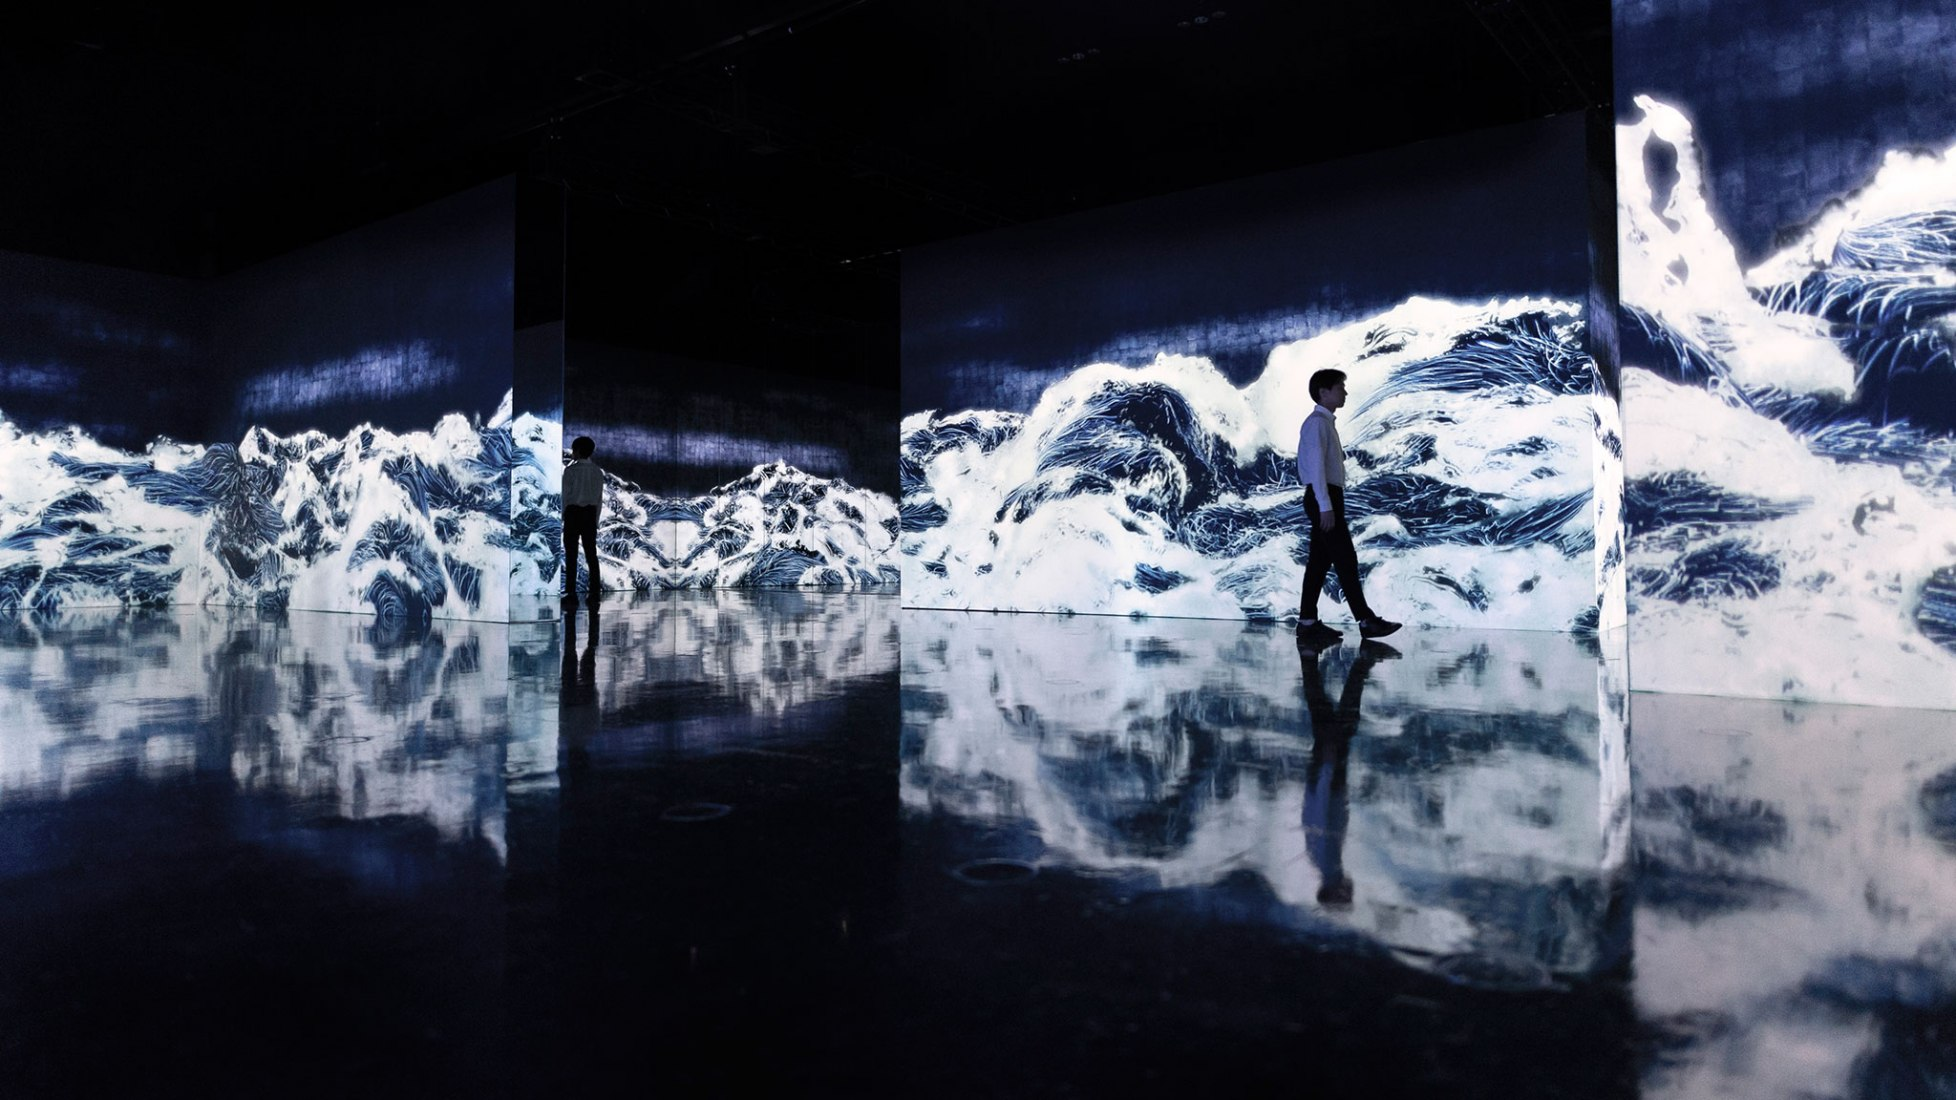 teamLab, Black Waves: Lost, Immersed and Reborn , 2019, Digital Installation, Continuous Loop, Sound: Hideaki Takahashi. Photograph © teamLab, courtesy Pace Gallery